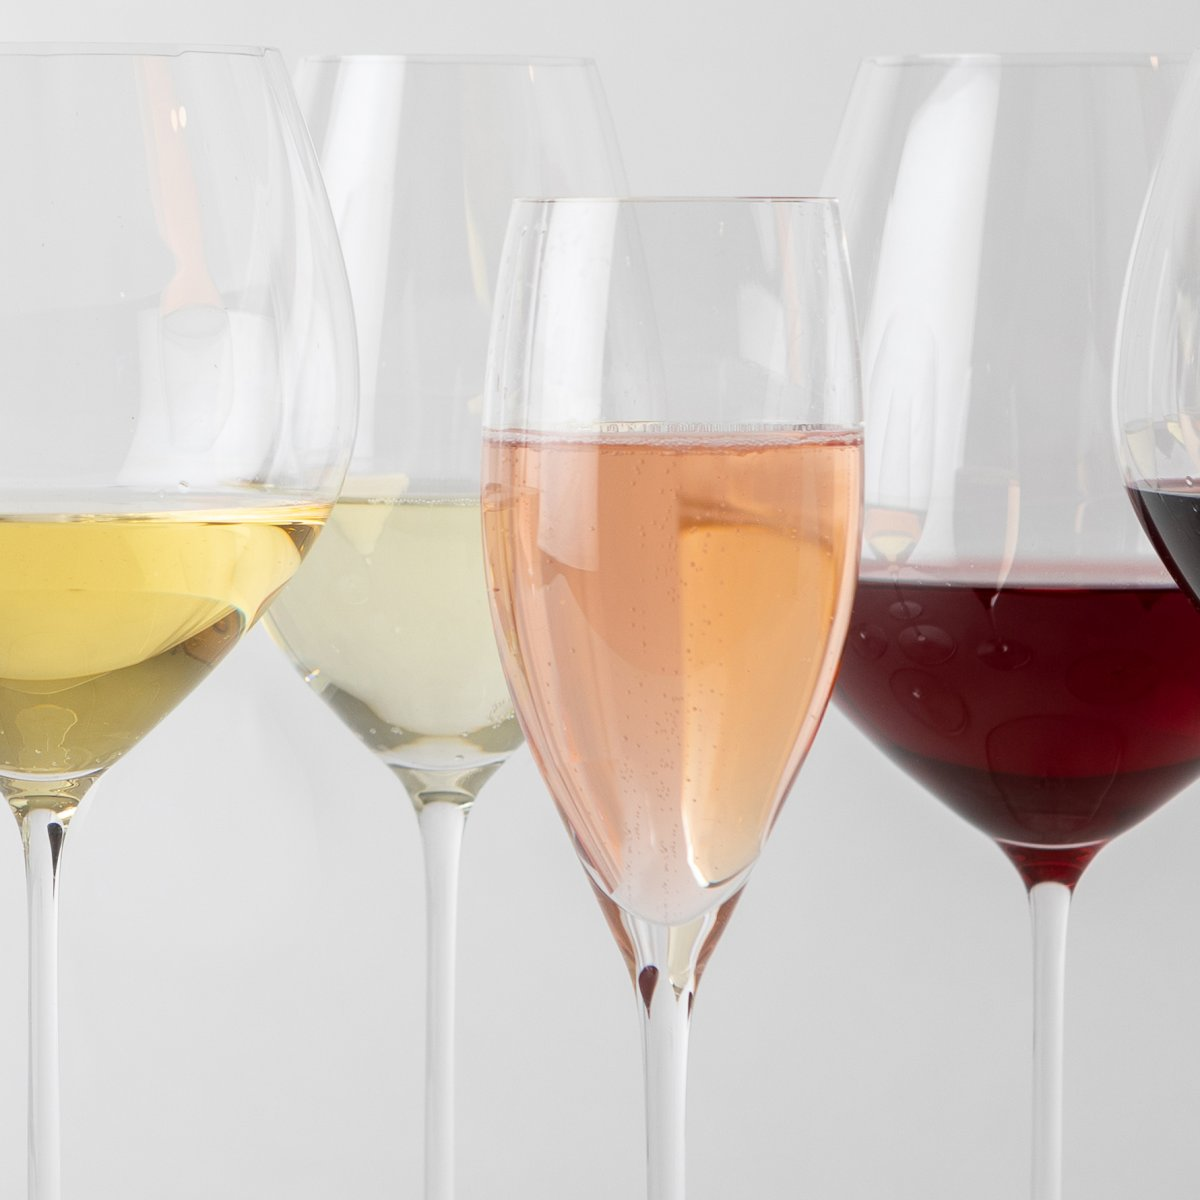 Four Diff Wine Glass Types with Wine